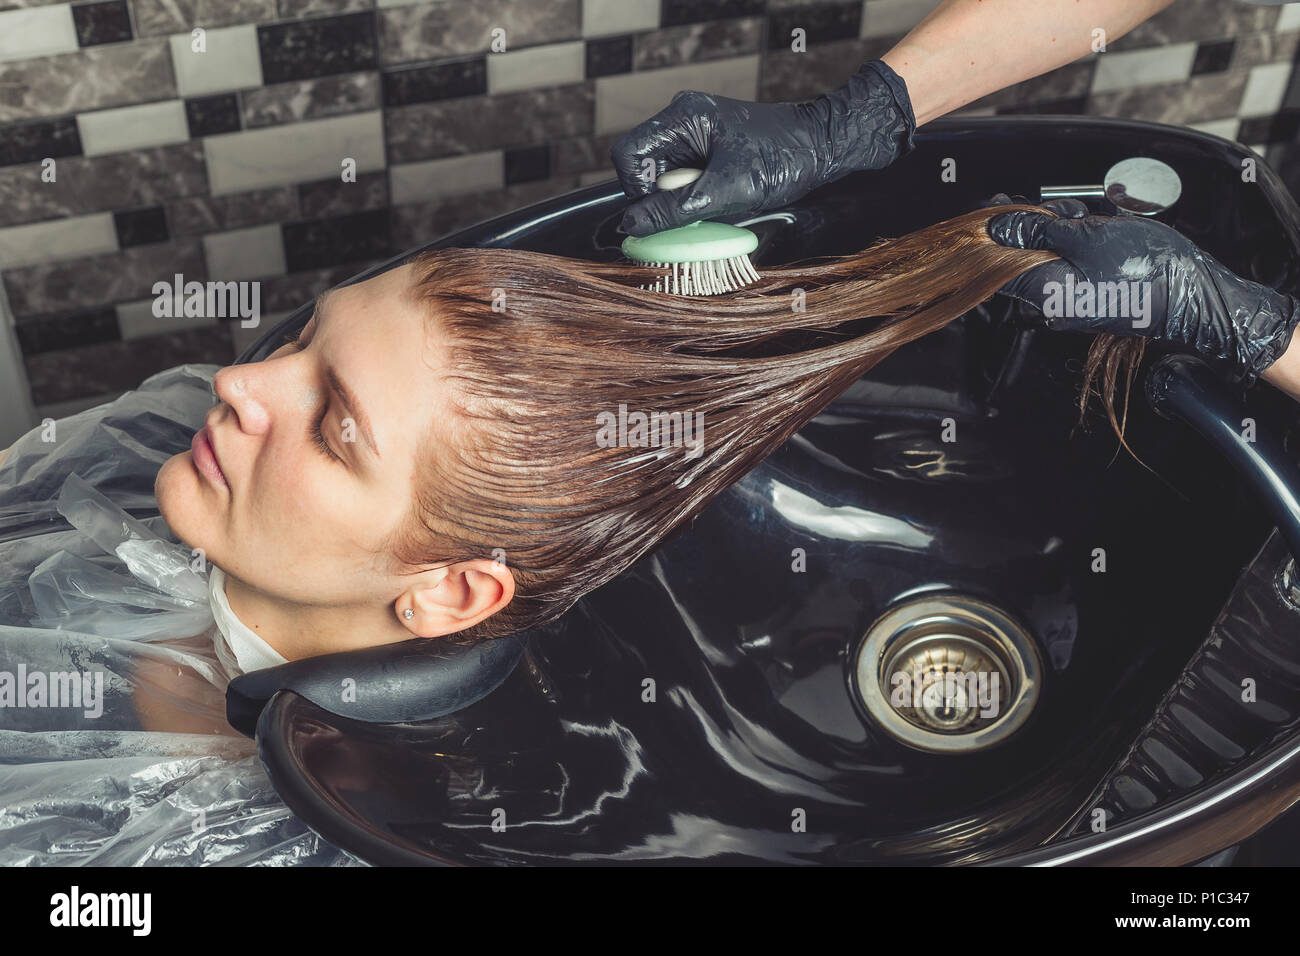 Haircare procedure in beauty salon. Hairdresser is brushing woman's hair spreading a treatment mask or conditioner - Stock Image